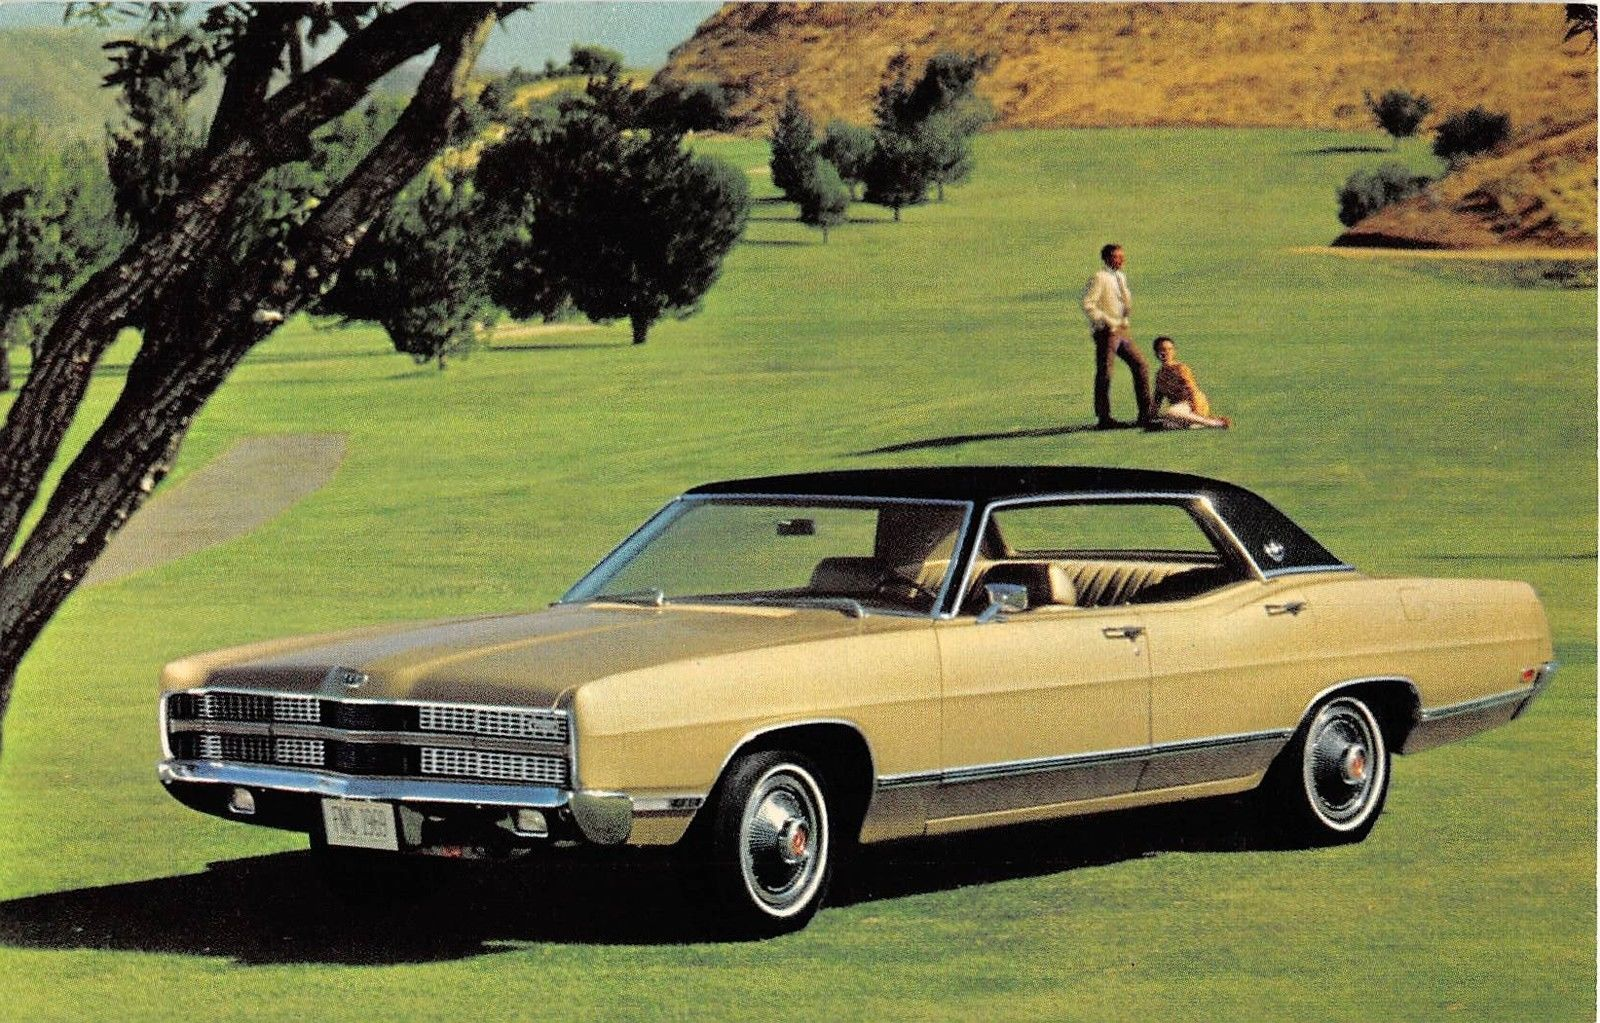 hight resolution of 1969 ford ltd 4 door hardtop vintage postcard y2645 mary l martin ltd postcards